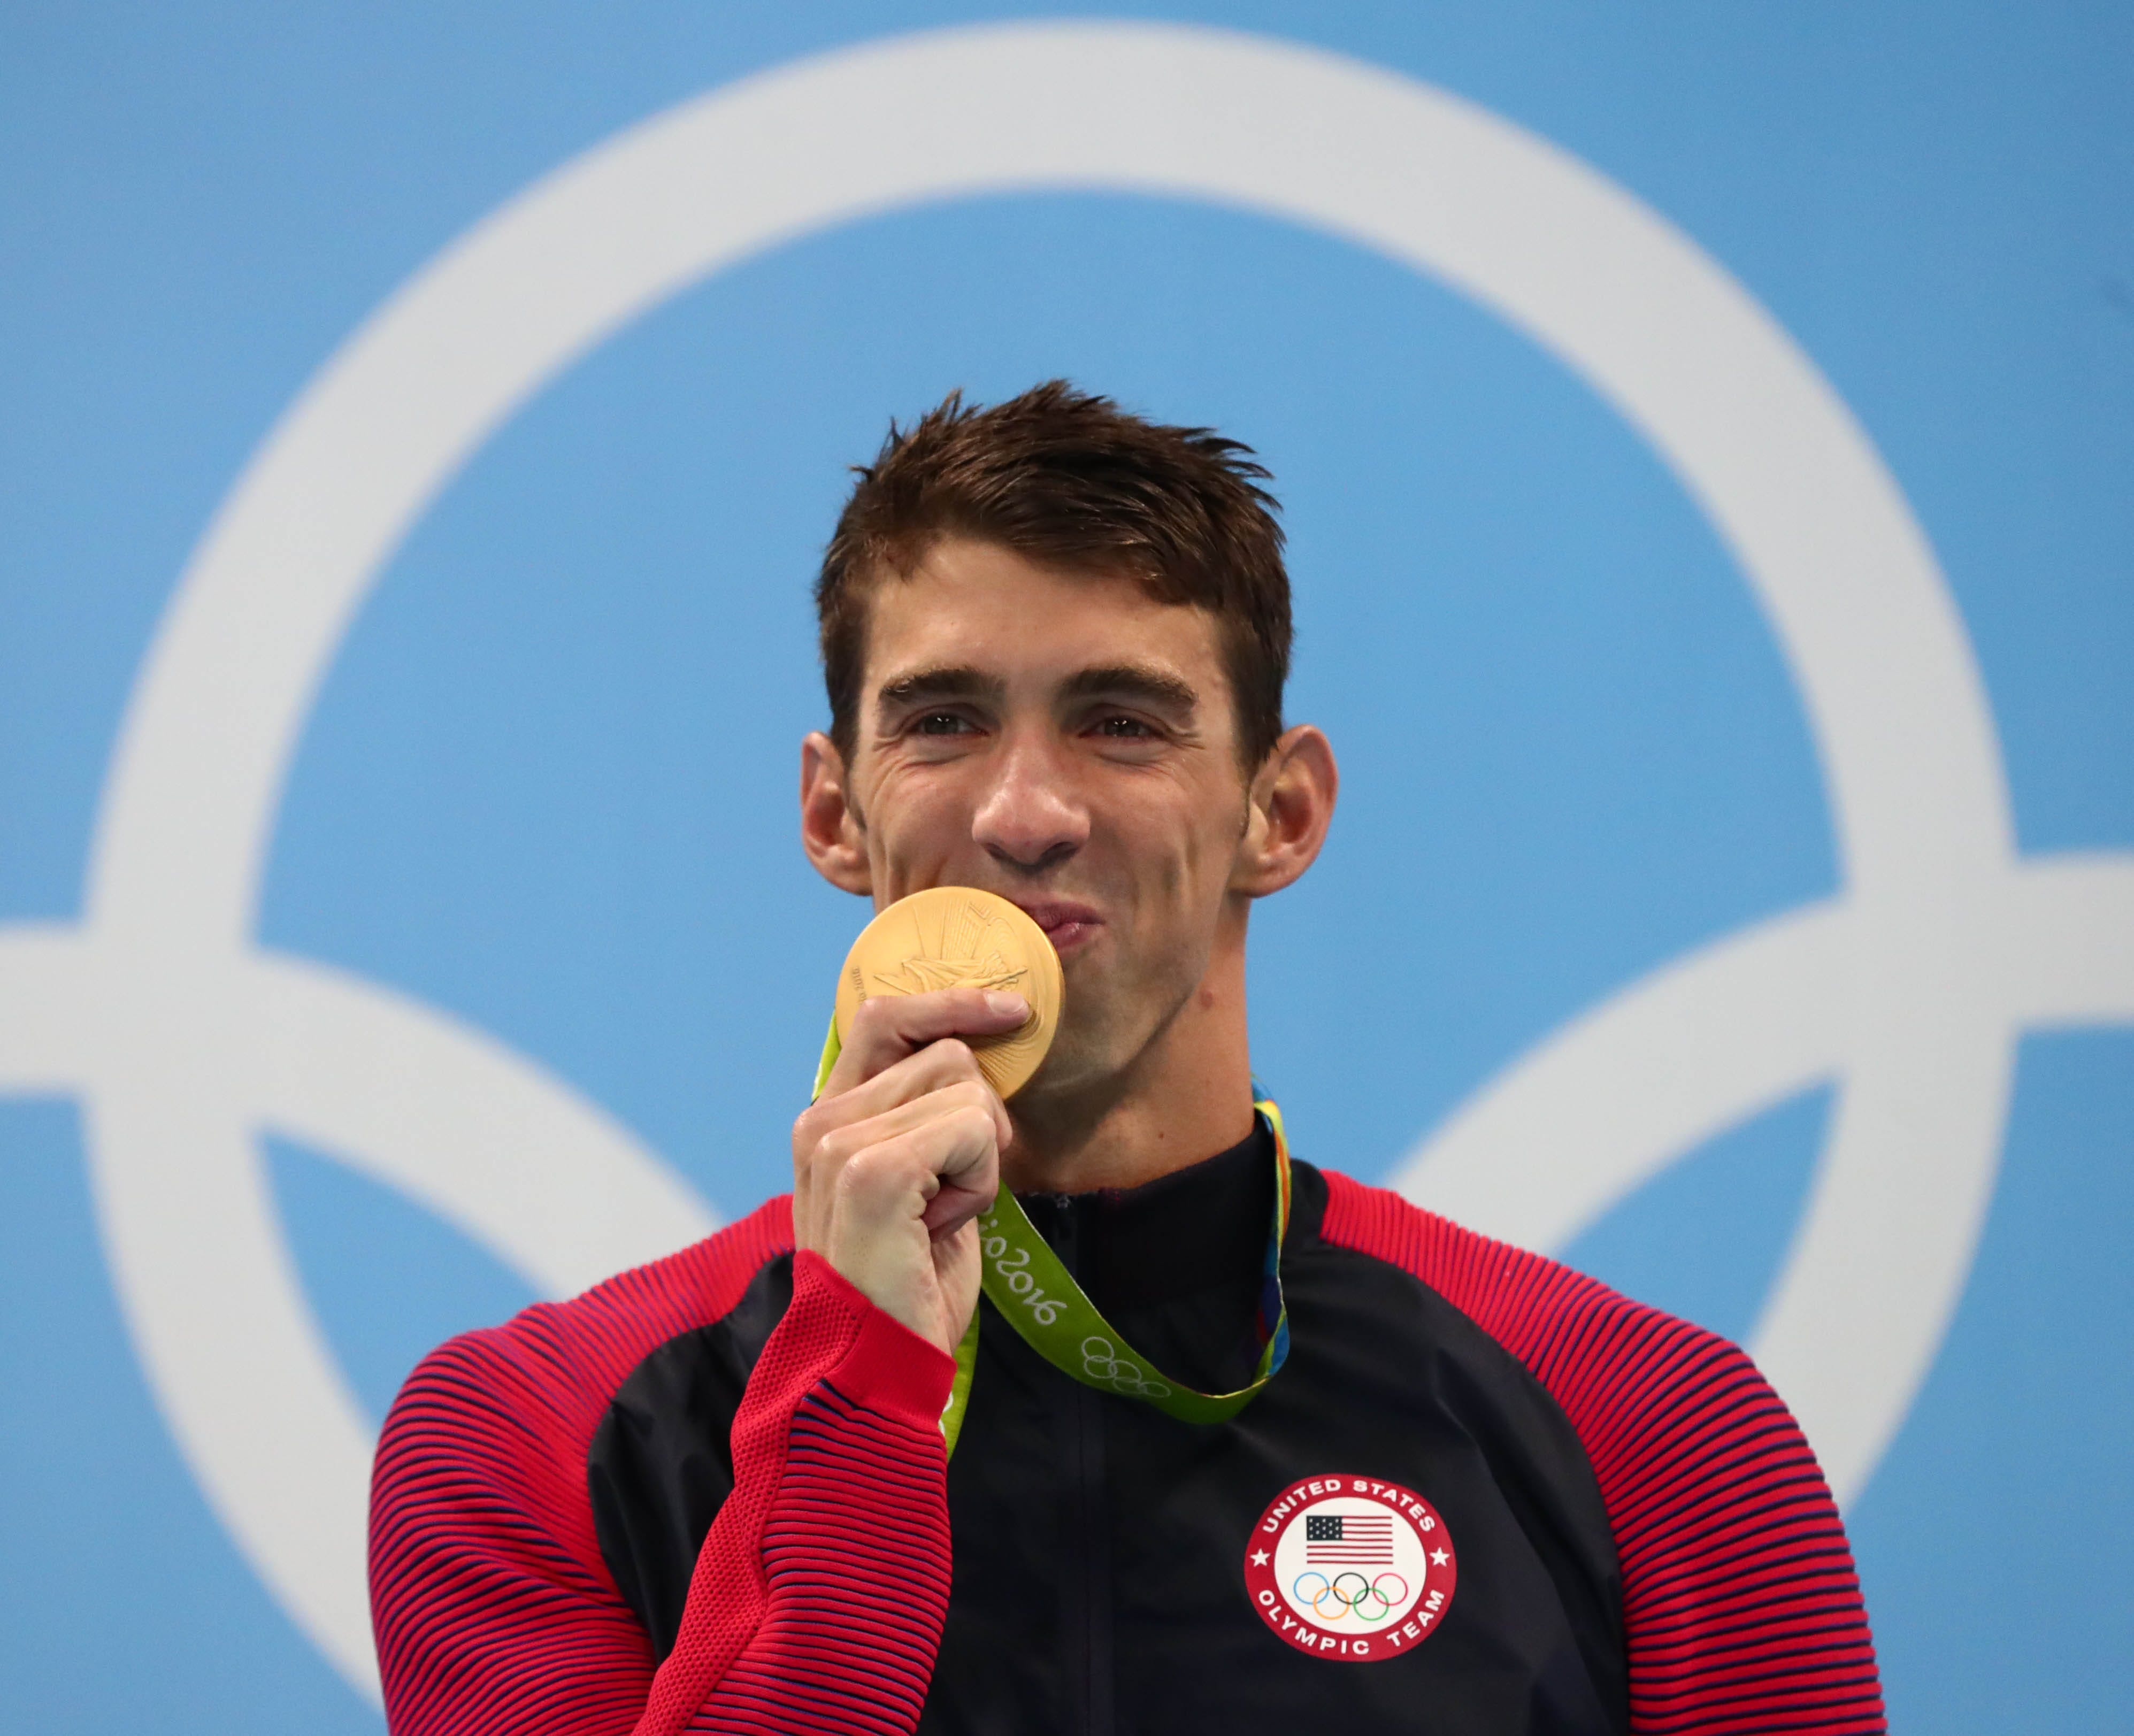 Michael Phelps rates the Olympics to be 'four or five' out of 10 when it comes to clean athletes